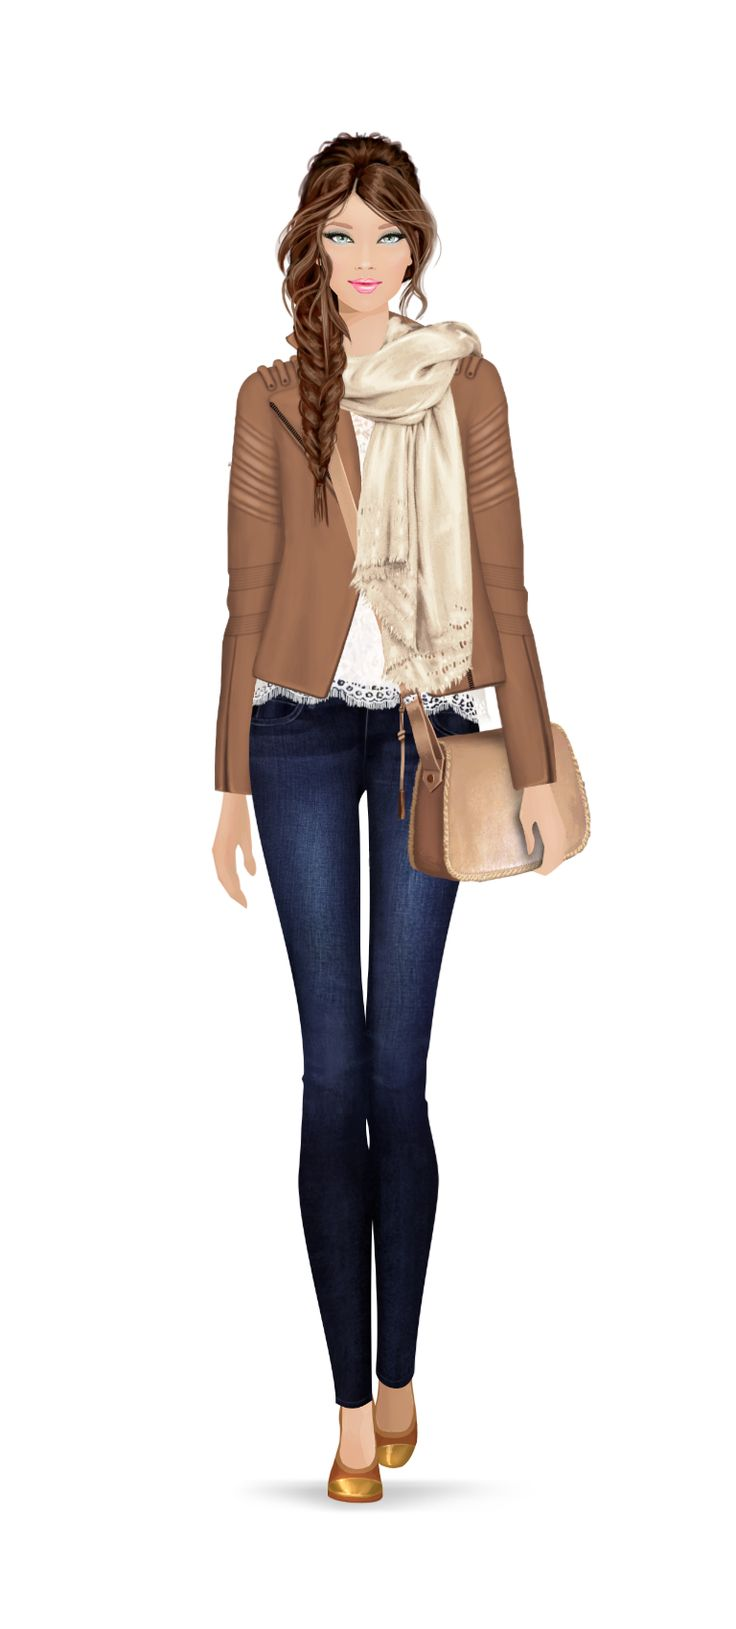 Fashion Game outfit super cute!!! #Covet fashion game